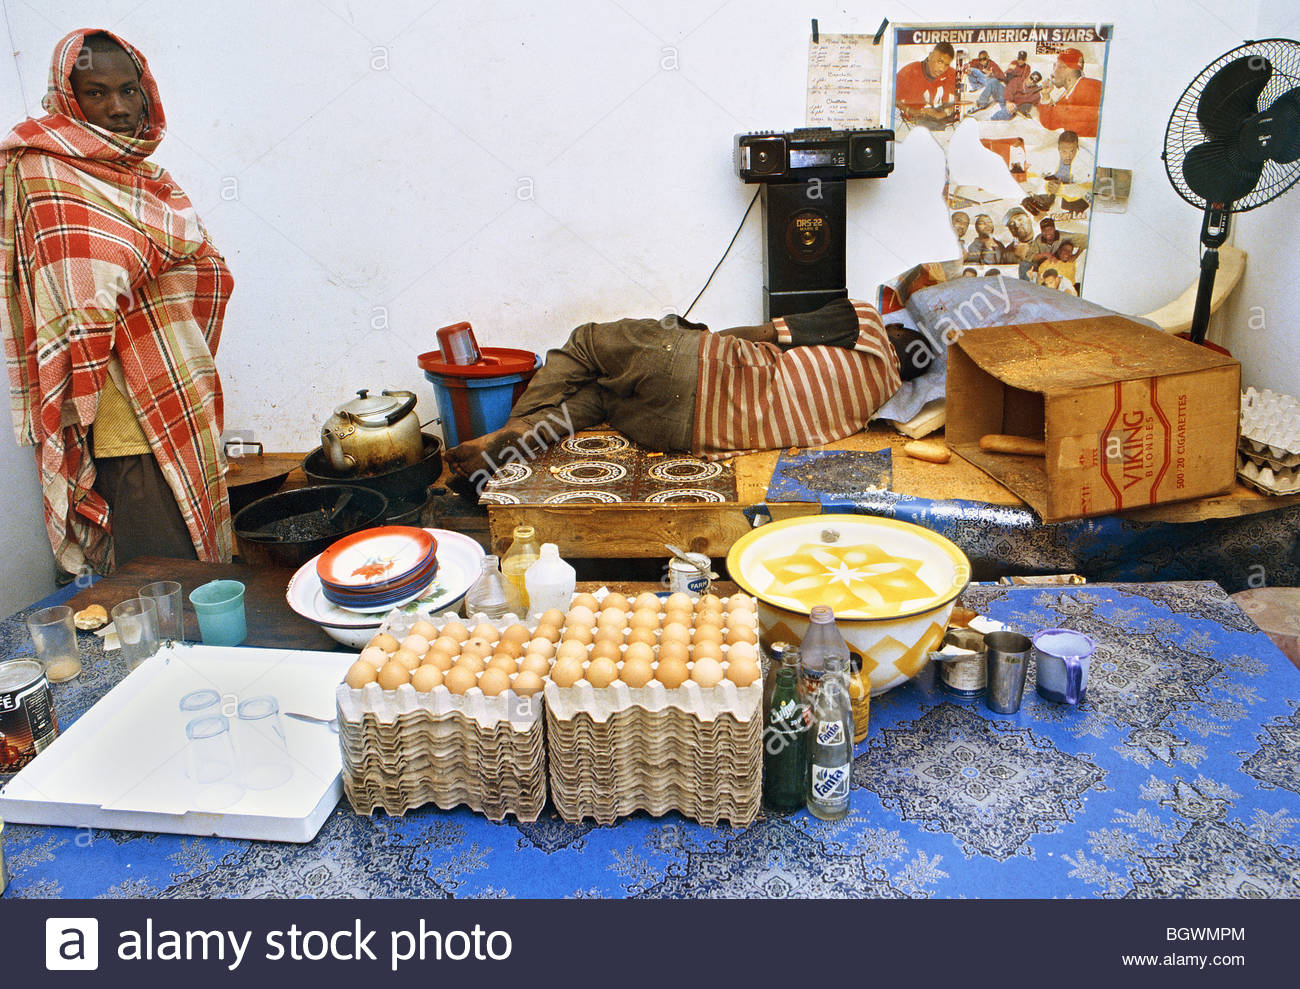 FOOD Mauritania North Africa Cafe restaurant SLEEPING CHEF COOK filthy eggs cooking African food 2000 - Stock Image